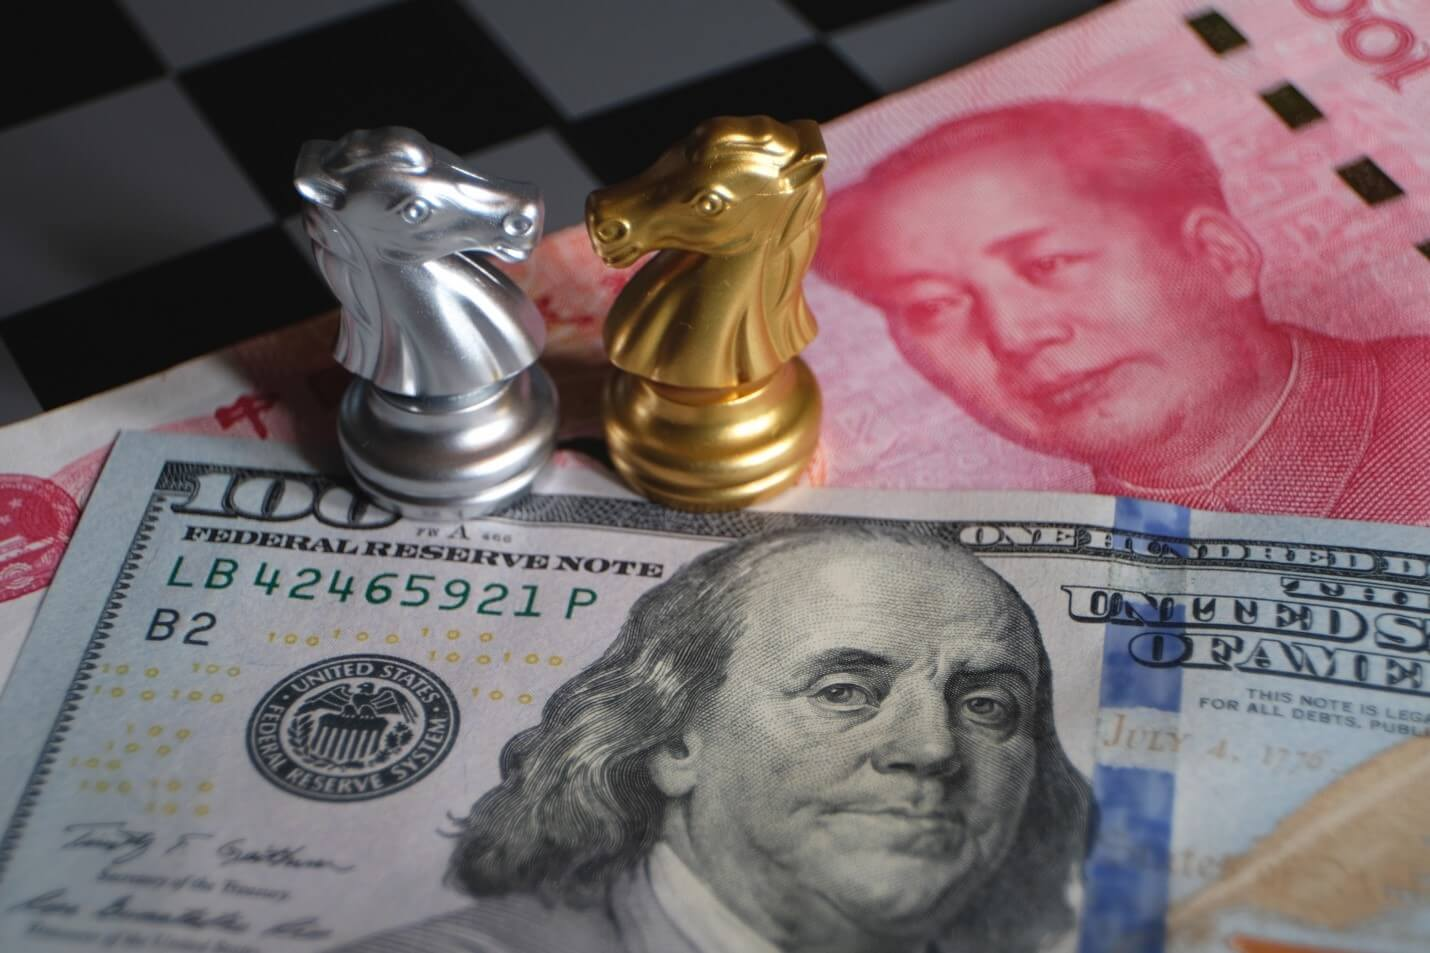 Two chess pieces over a dollar and yuan bill